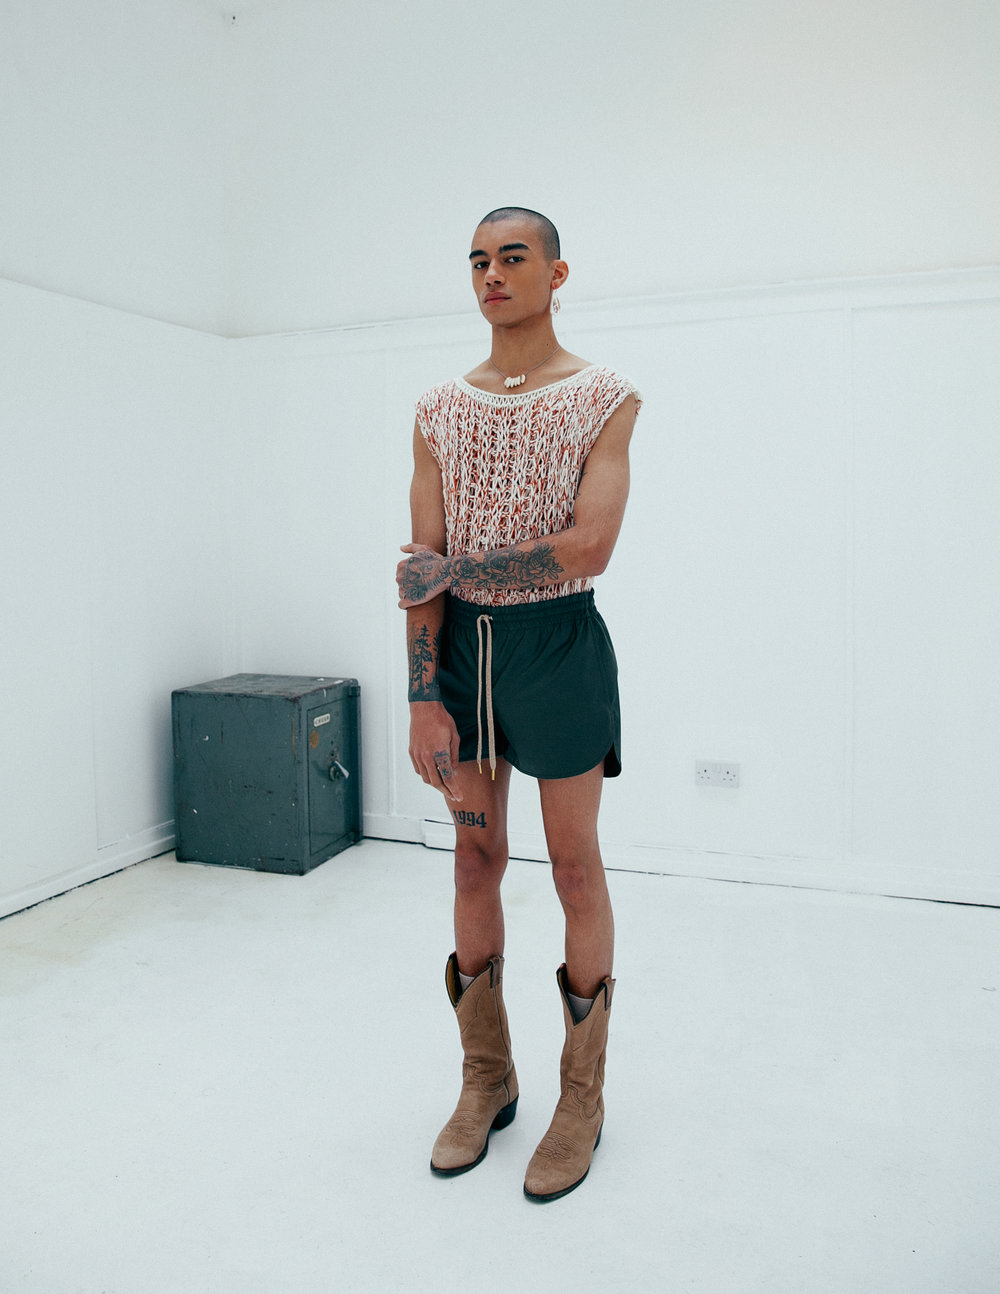 White Knit Top: Market Carter | Shorts: Julian Zigerli | Boots: Window 00 | Jewelry: Stylist's Own